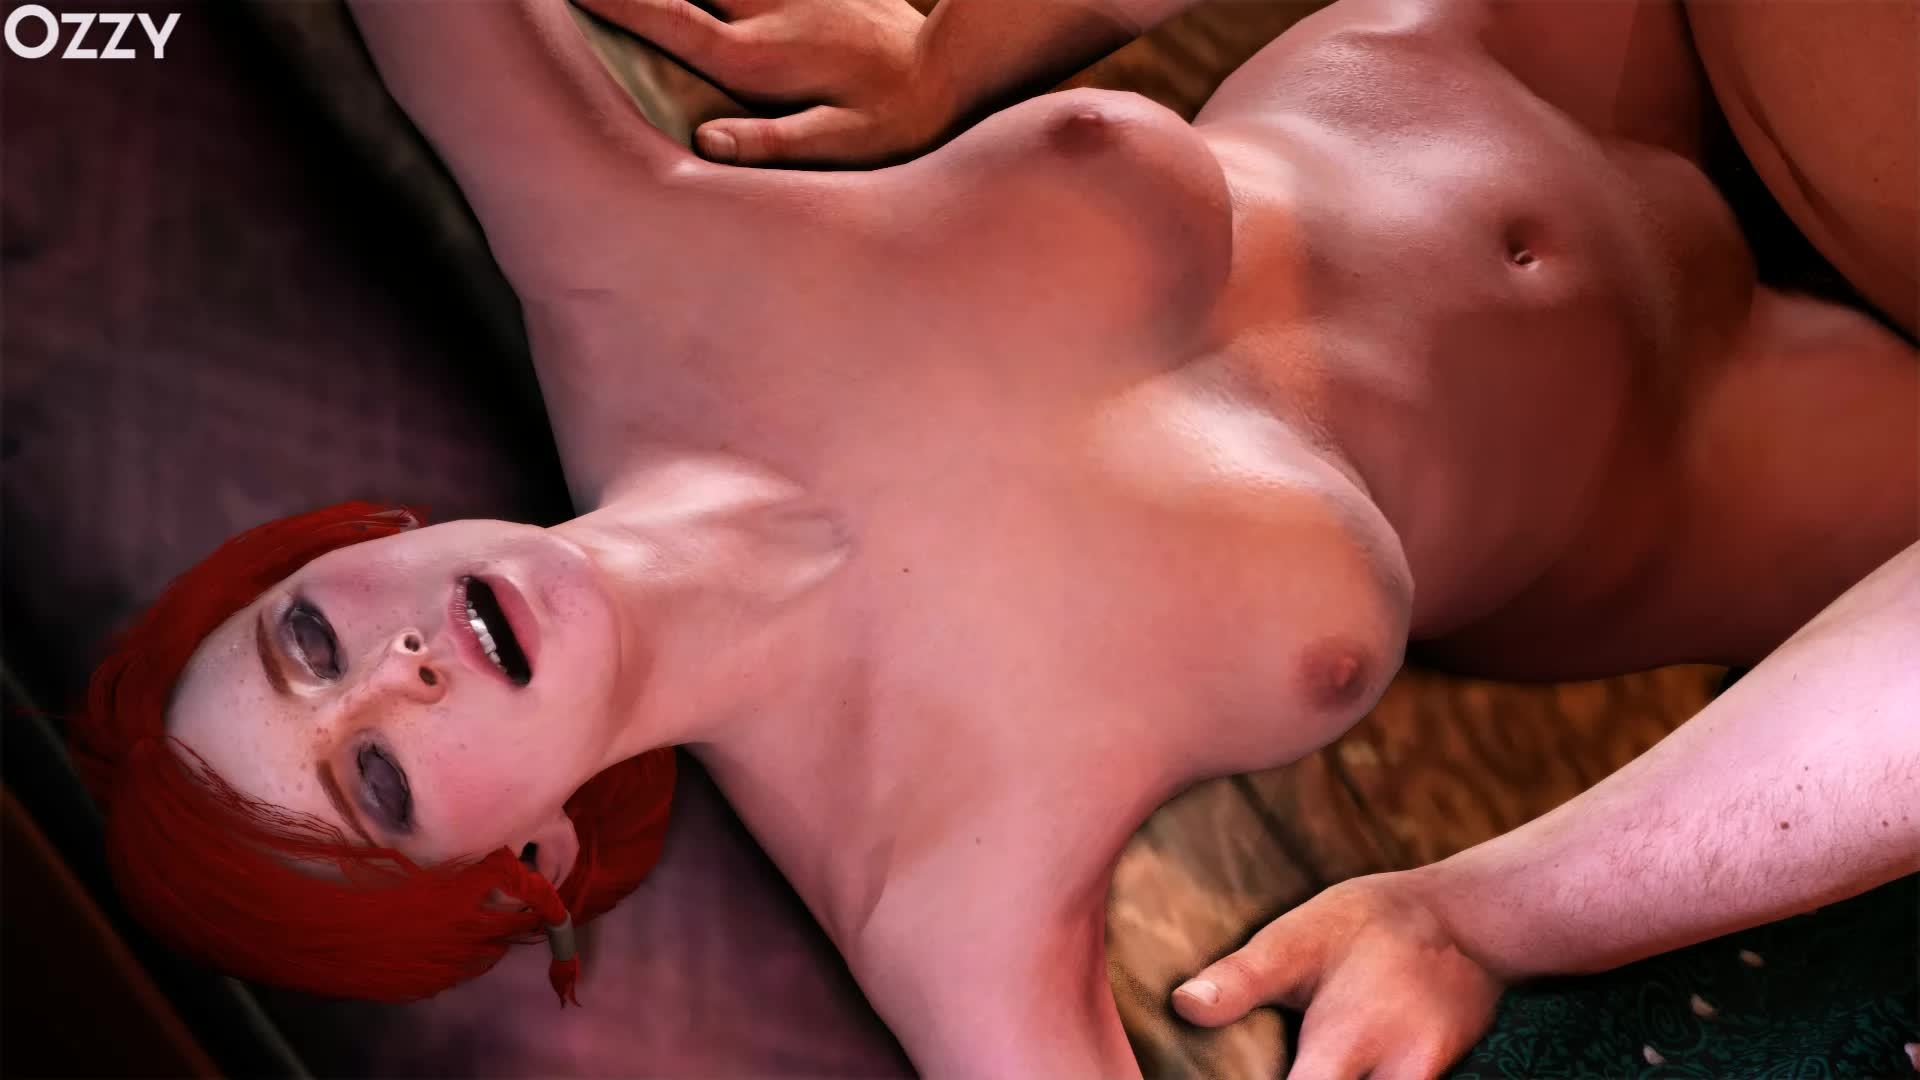 The witcher 3 porn gif erotic streaming